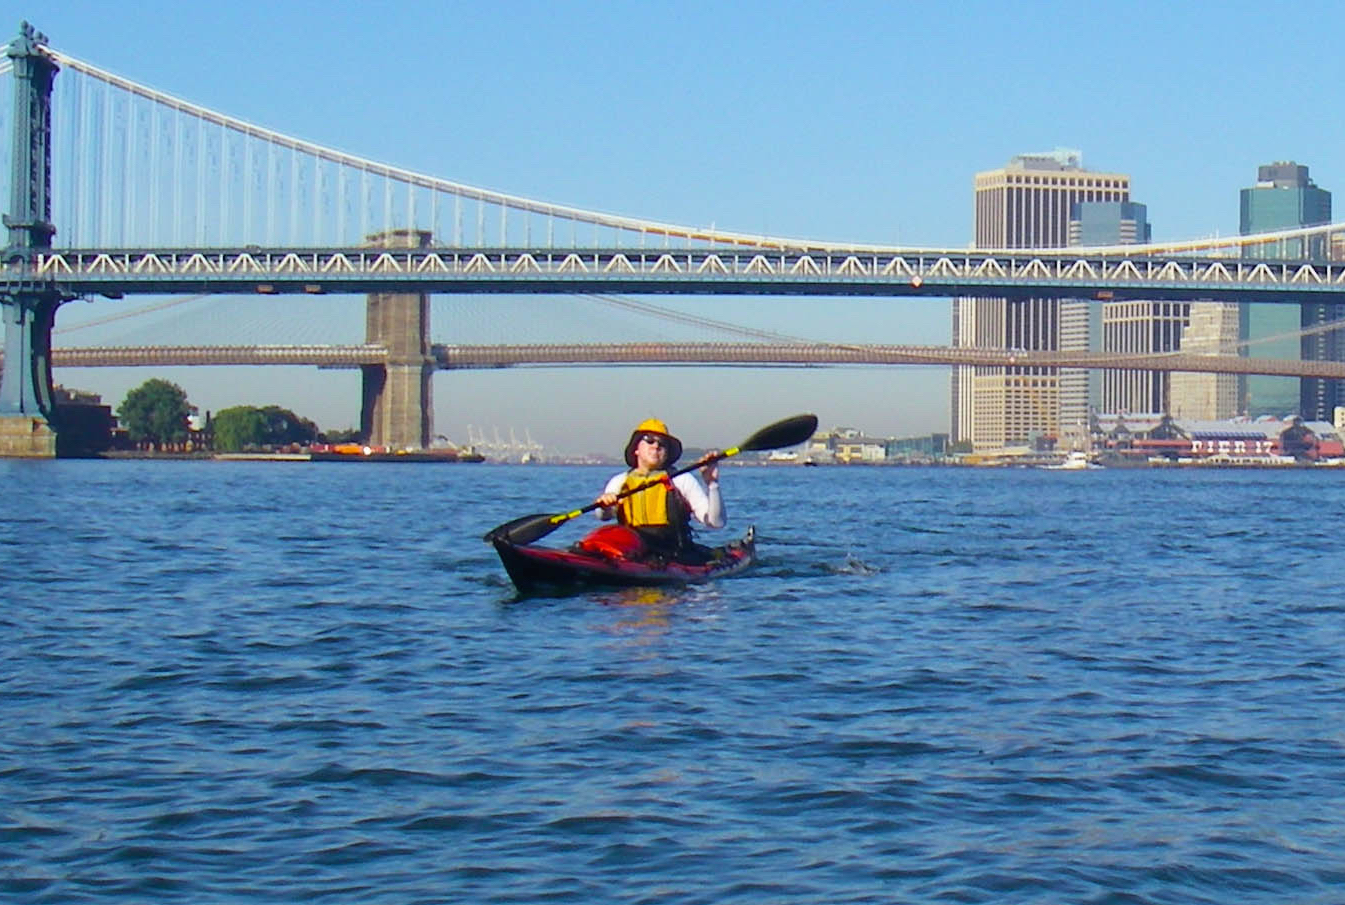 vlad-smiling-with-paddles-and-bridge